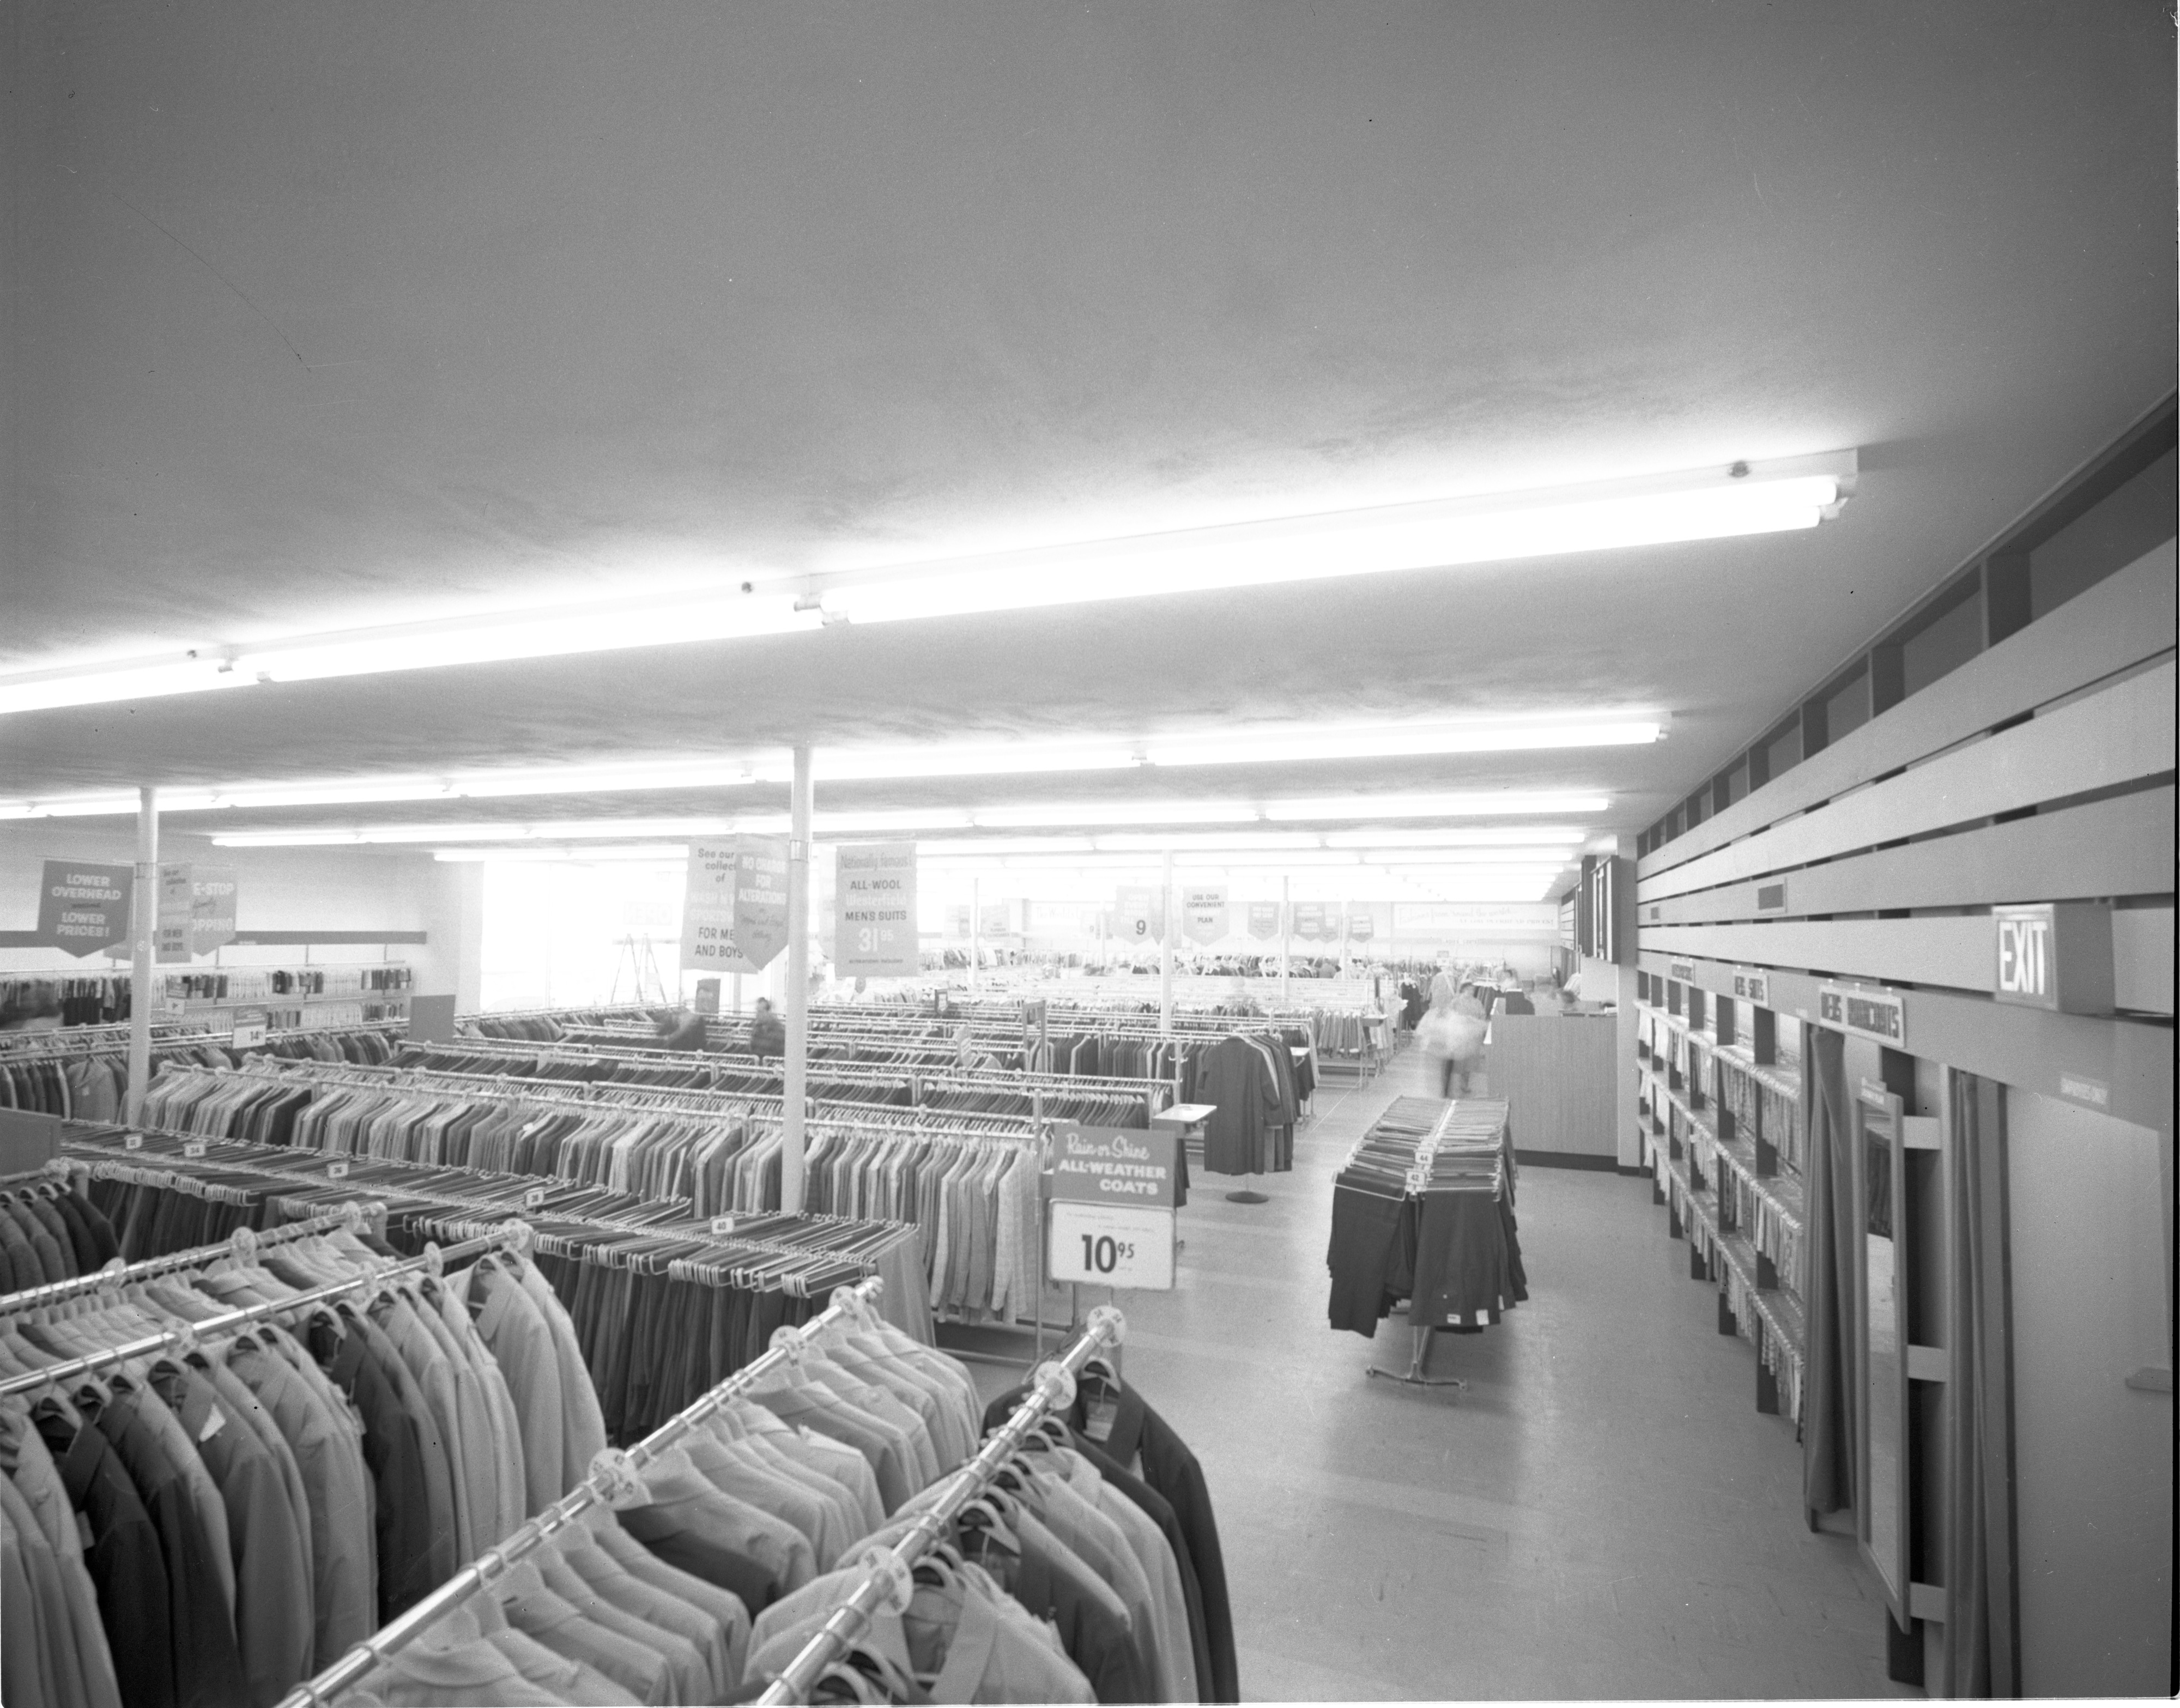 Interior Of Newly Opened Robert Hall Clothes Store, February 1959 image